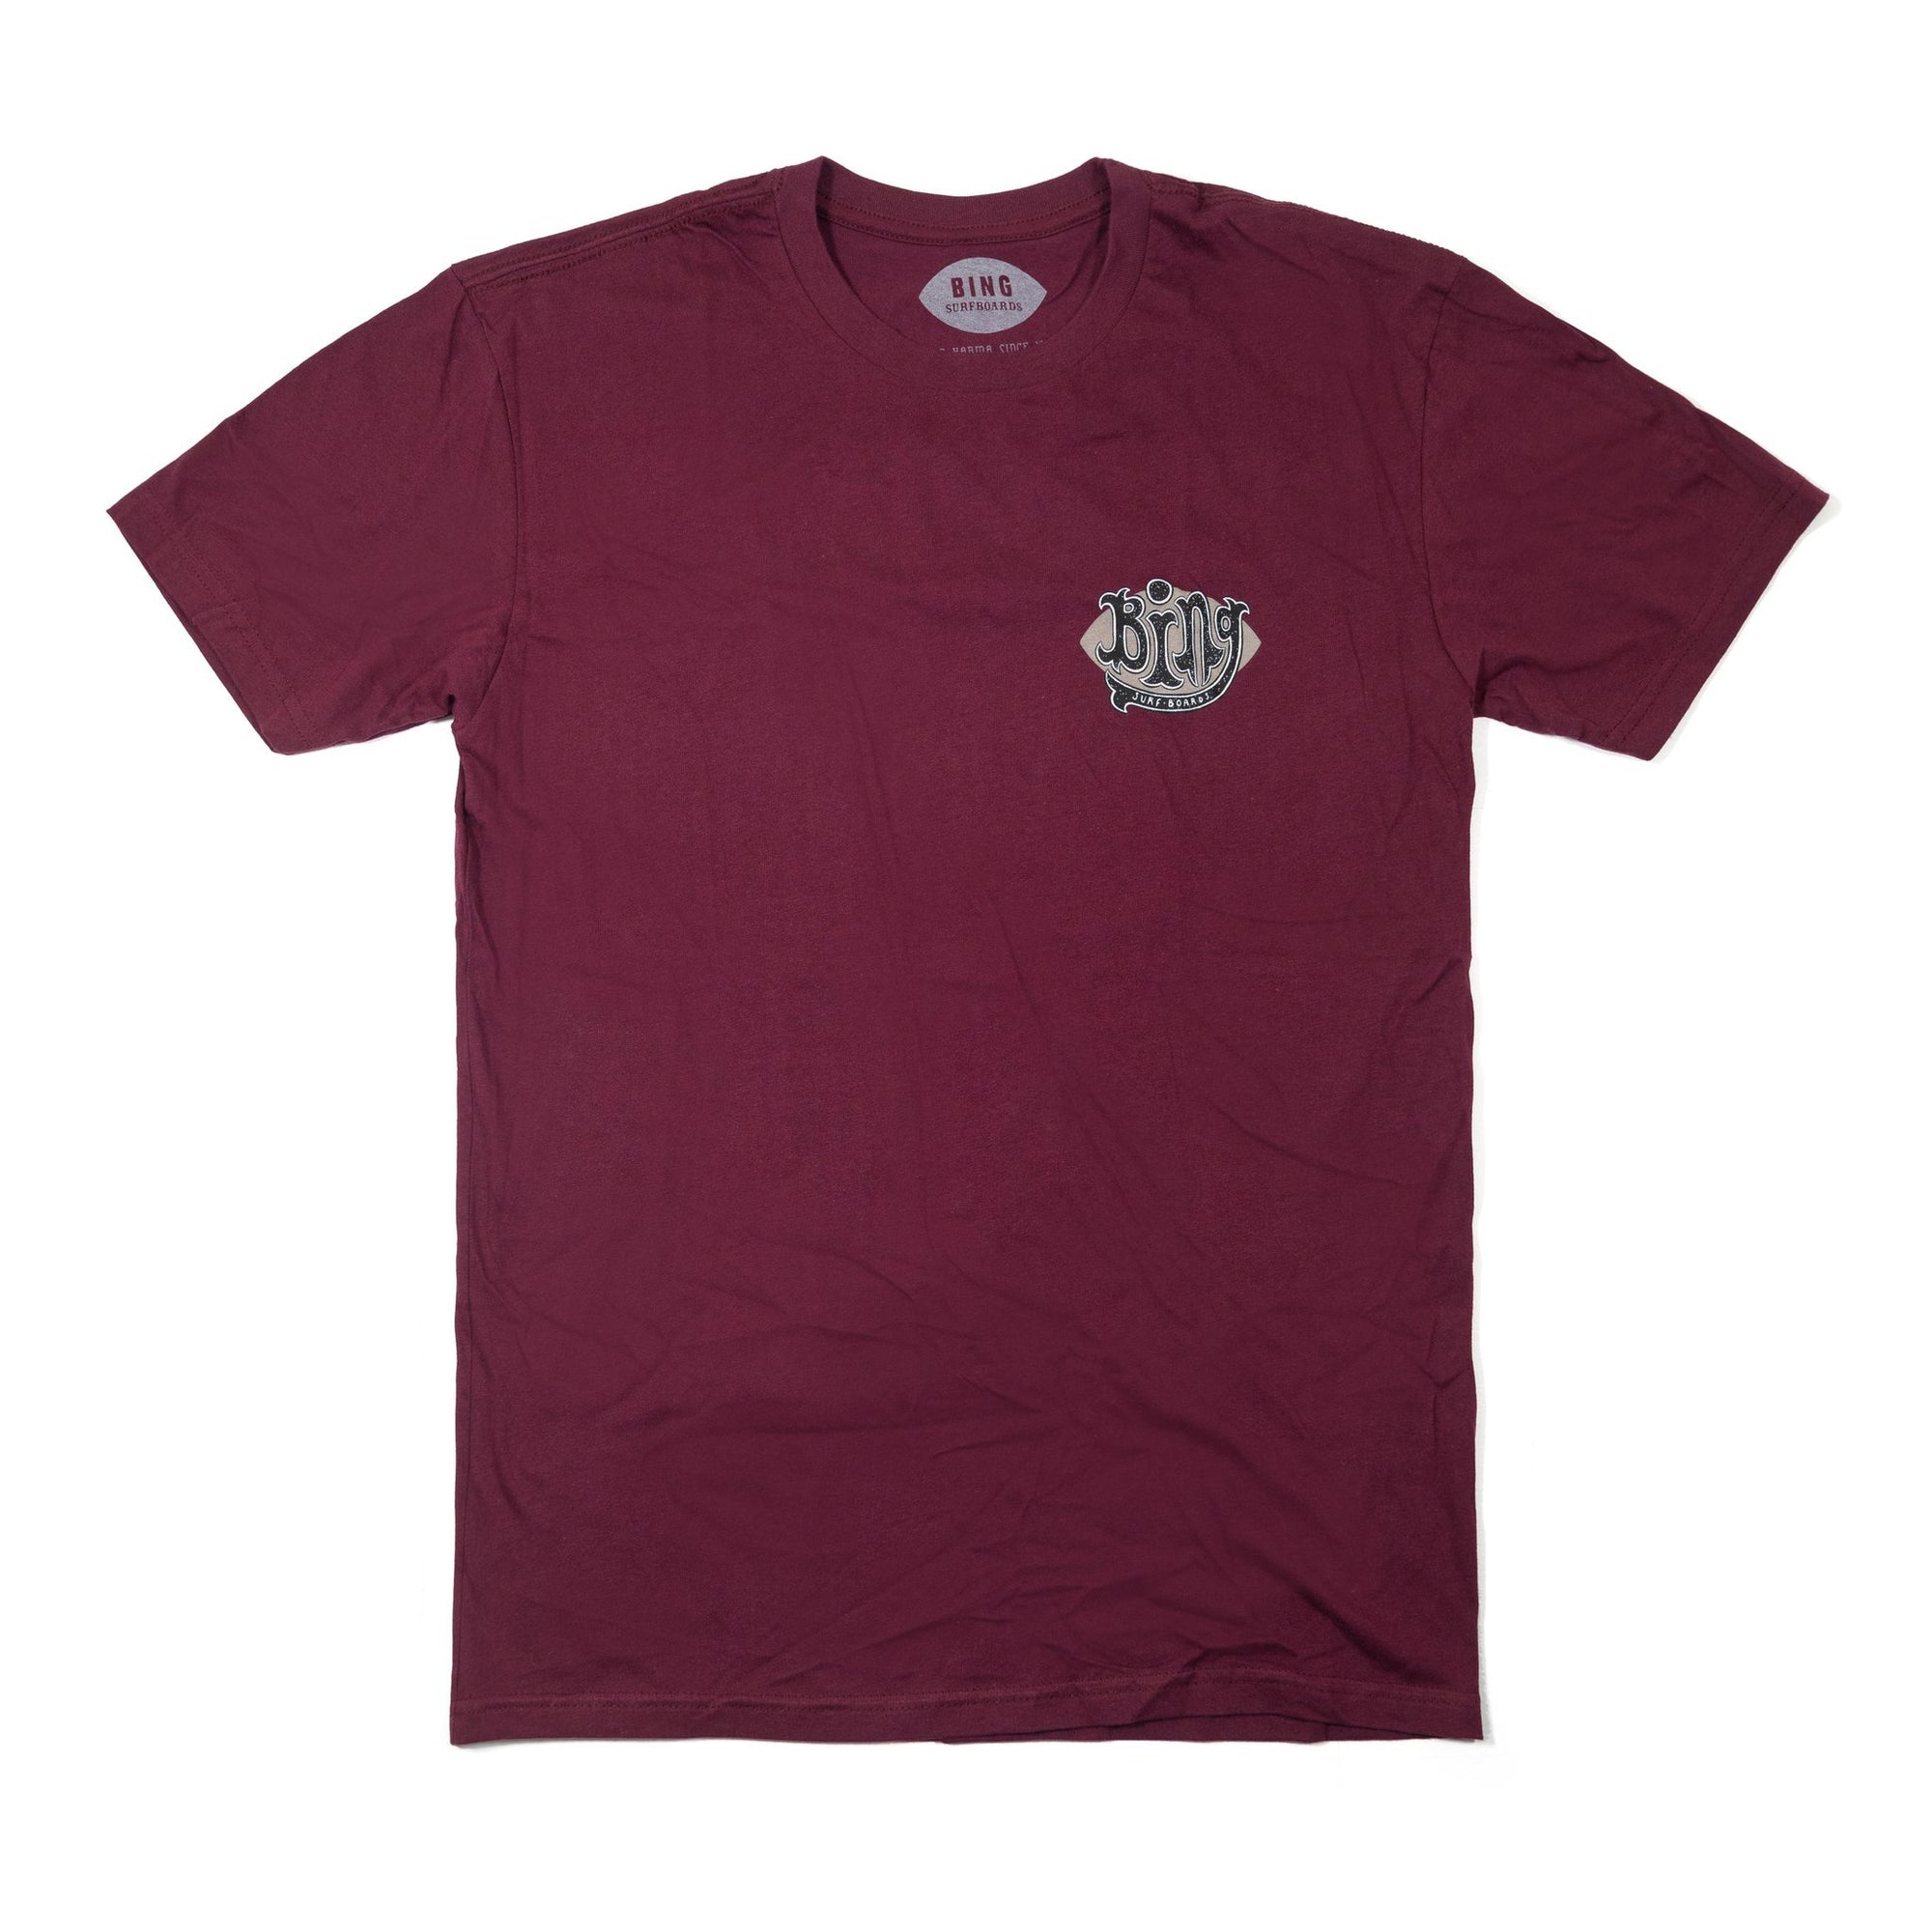 Bing Beacon Premium S/S T-Shirt Maroon